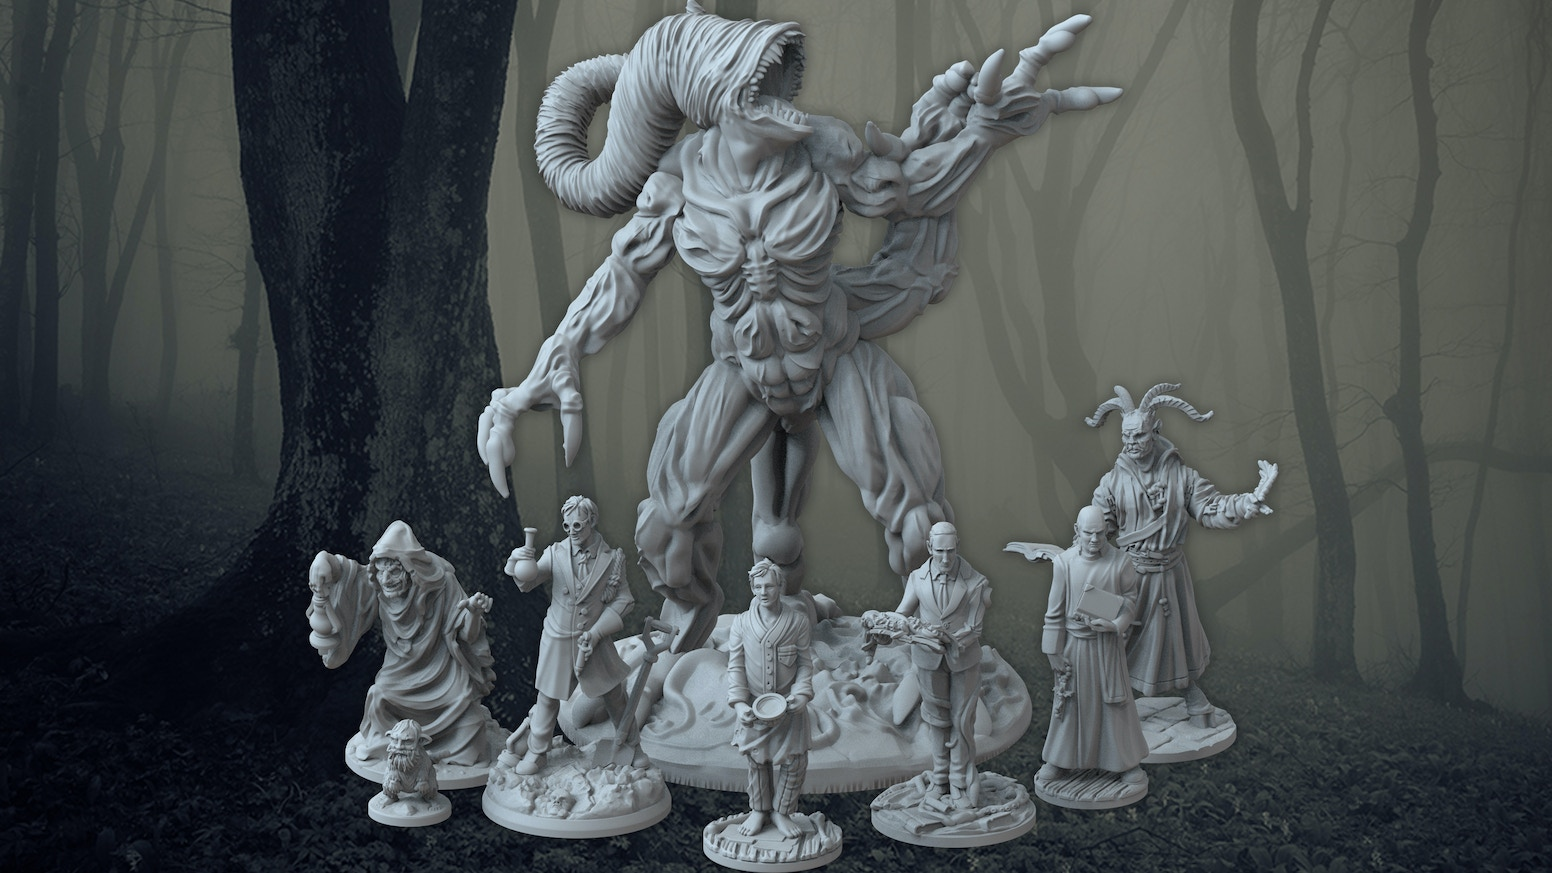 Resin miniatures collection based on H.P. Lovecraft's works, designed for RPG gamers, Painters & Collectors alike. Hand cast in the UK.